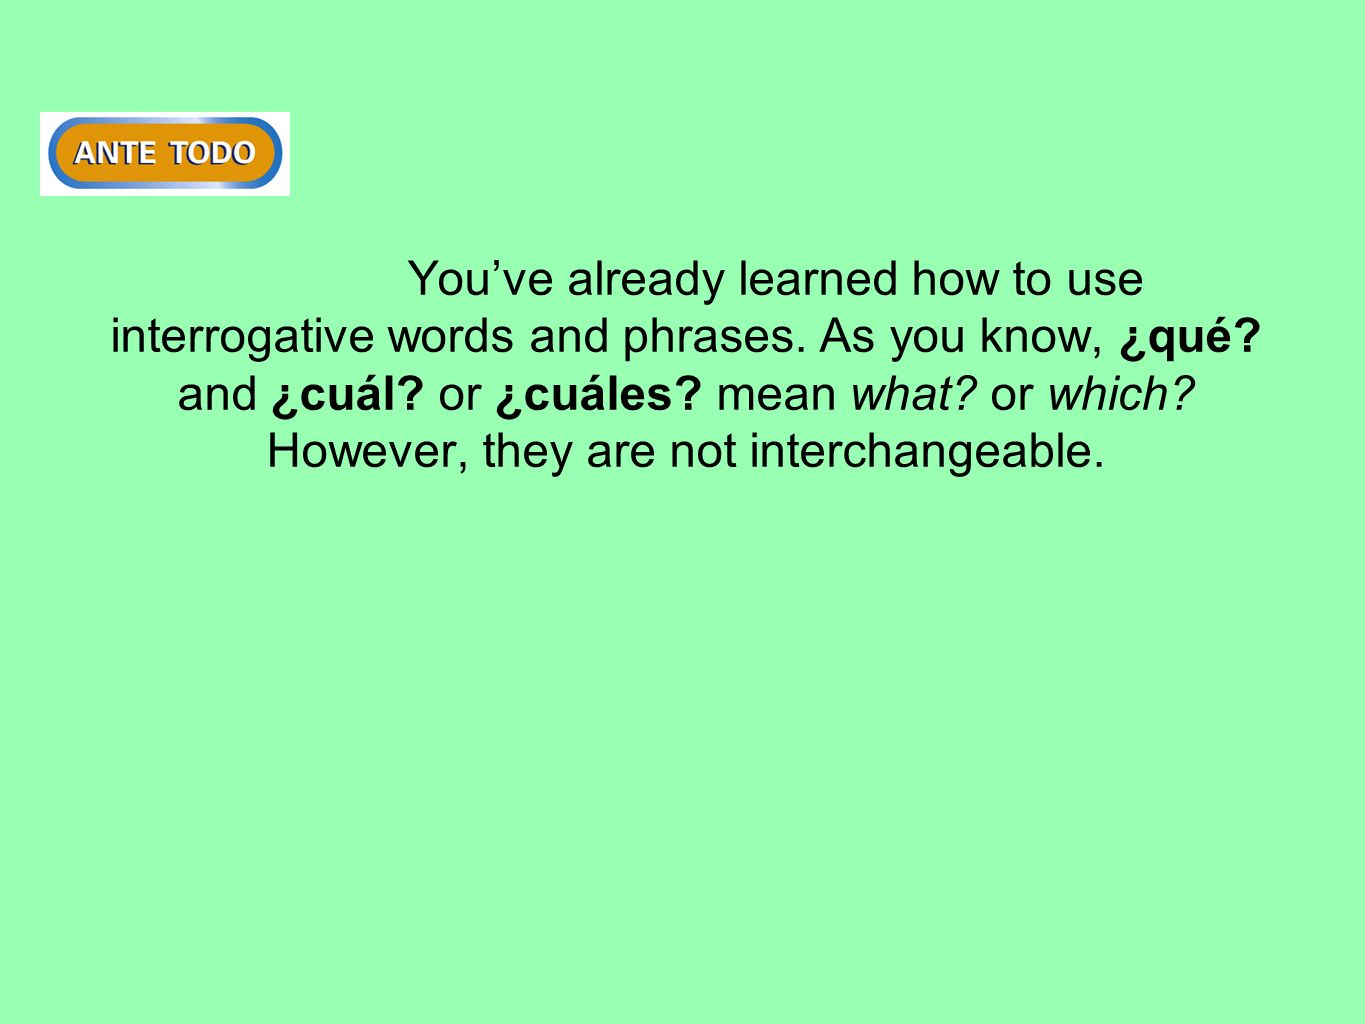 You've already learned how to use interrogative words and phrases